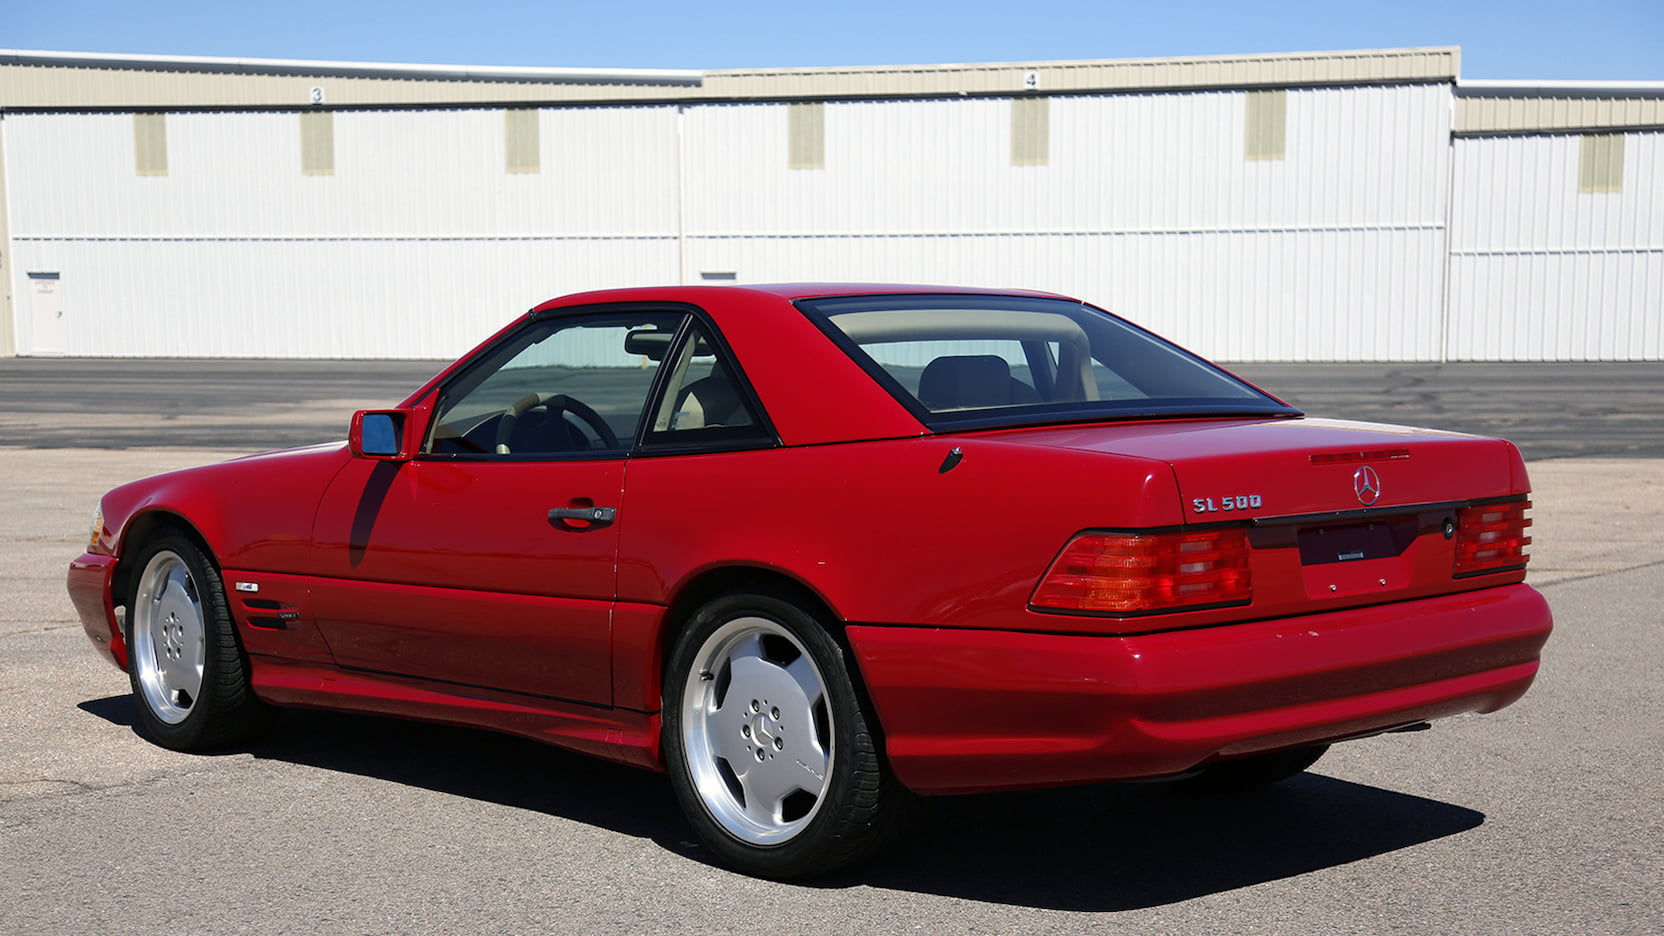 1996 Mercedes-Benz SL 500 rear 3/4